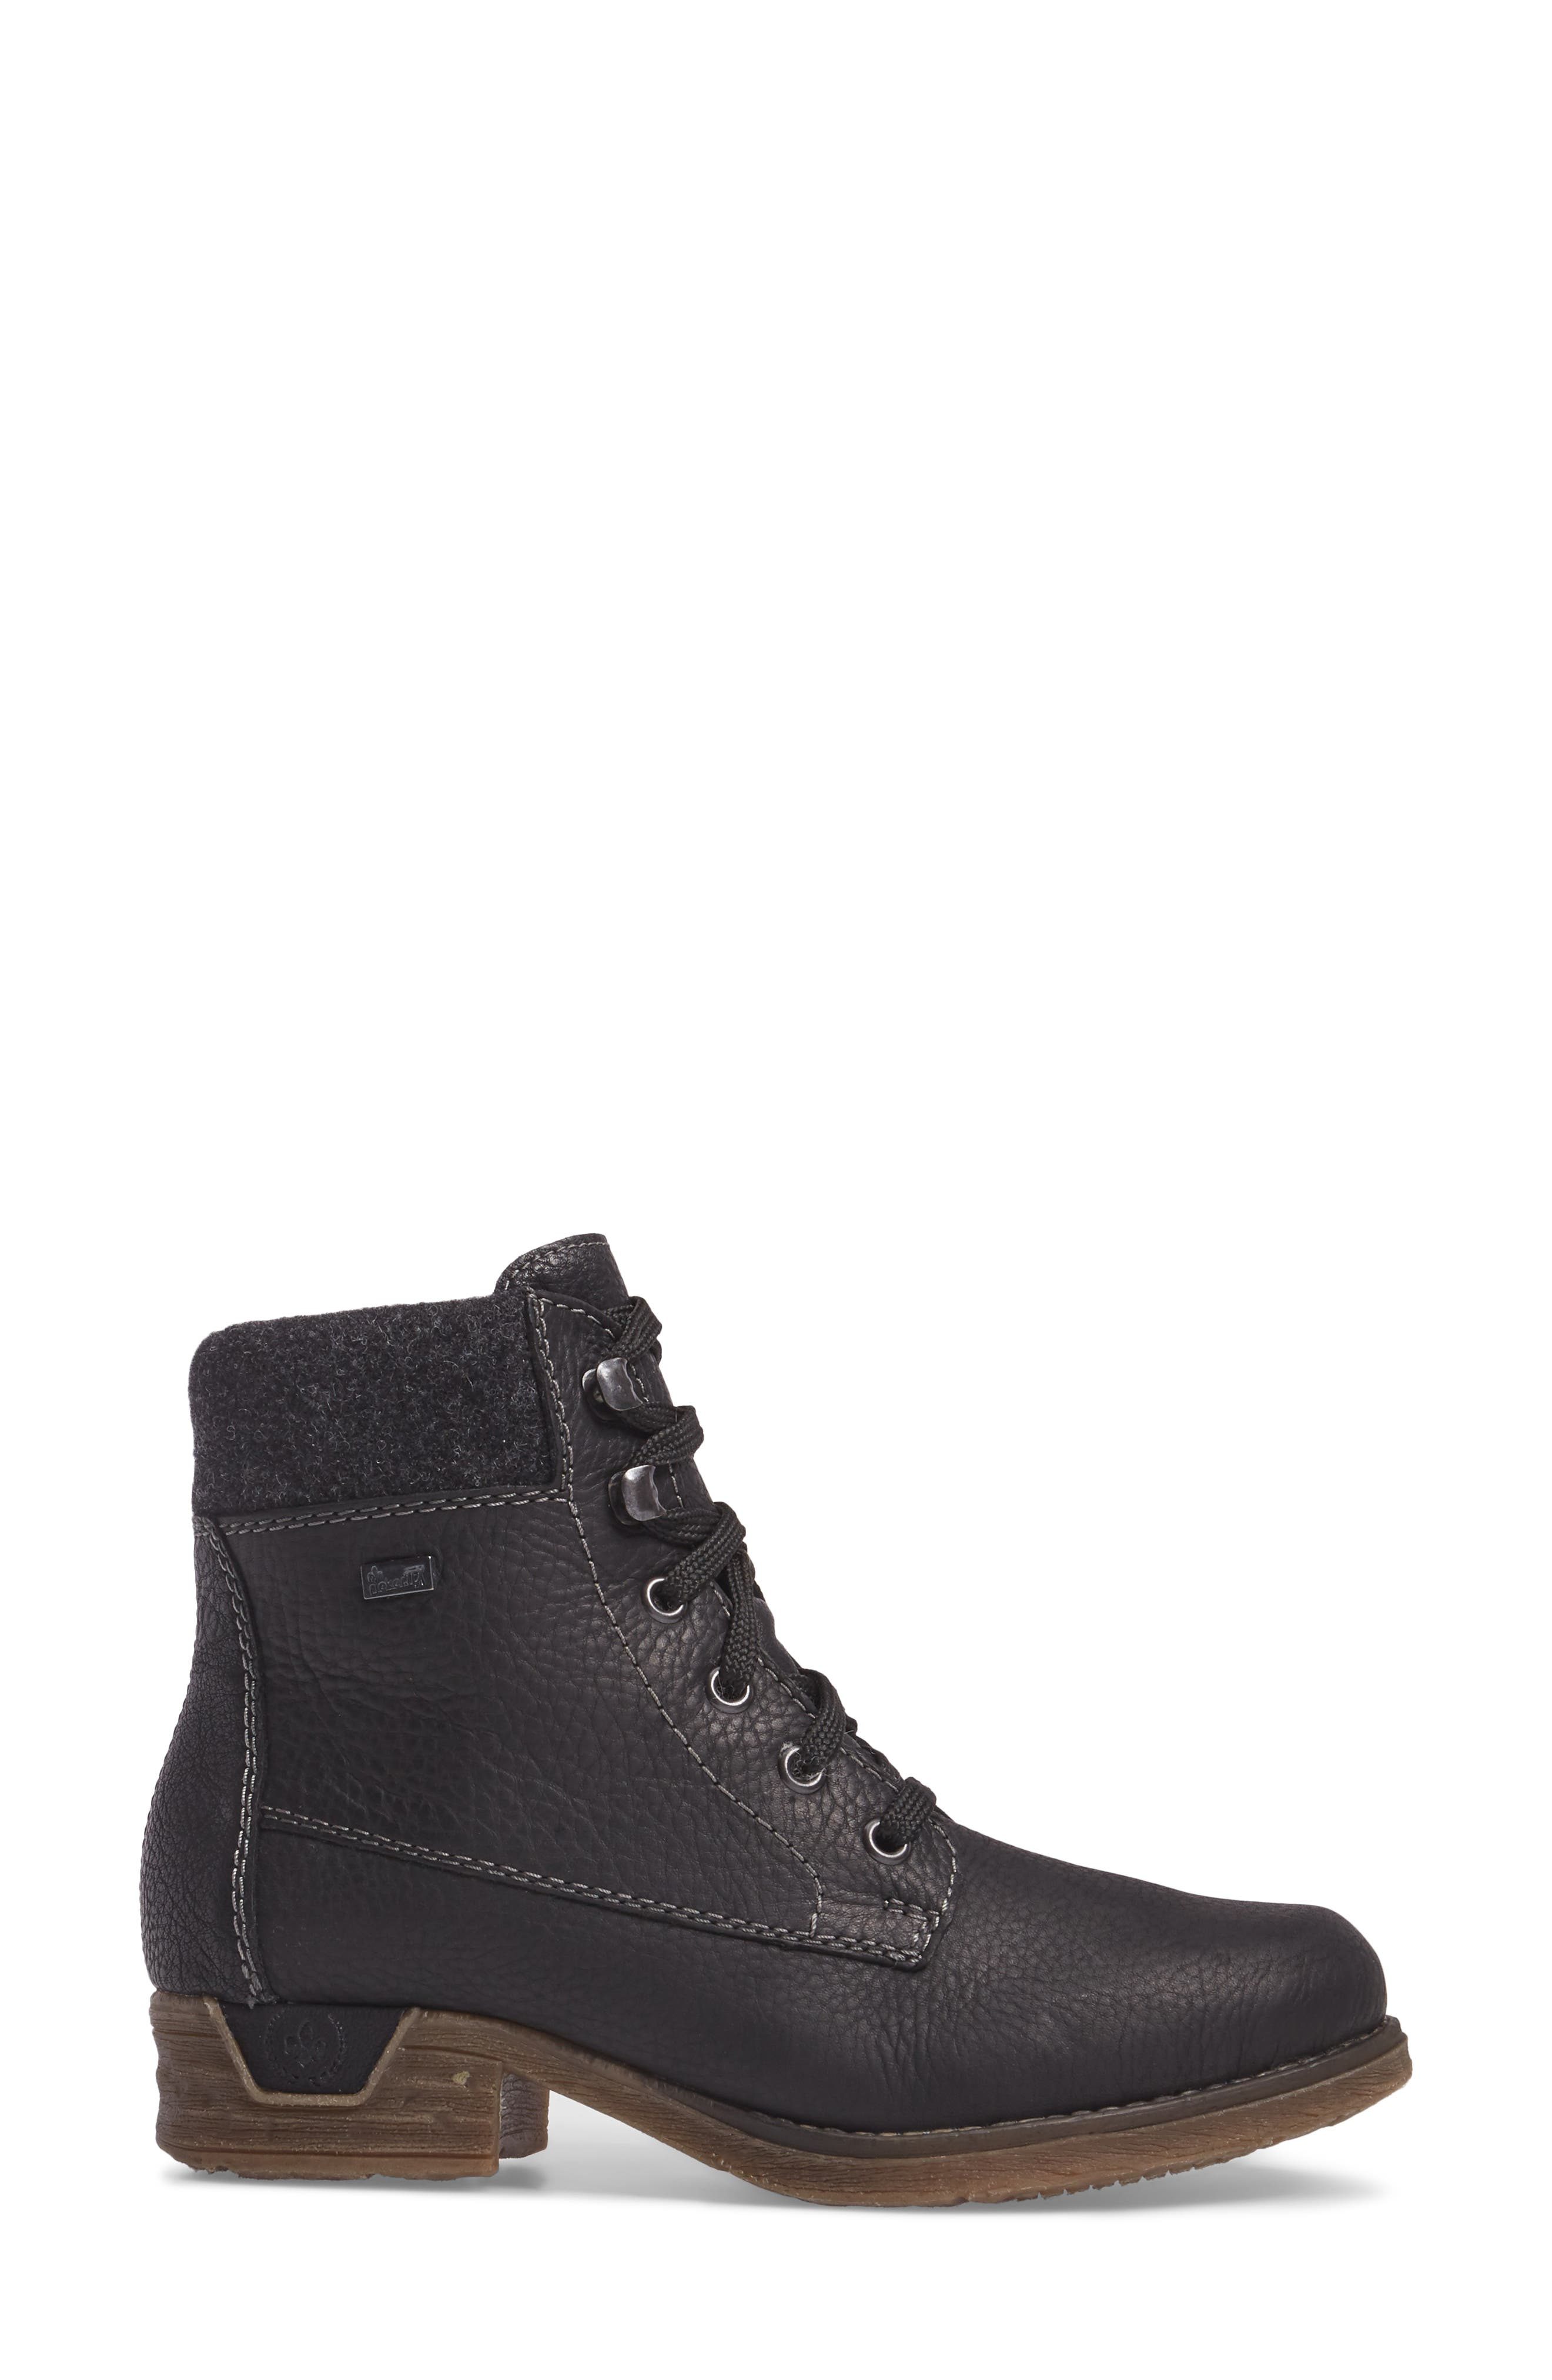 Fee 02 Lace-Up Boot,                             Alternate thumbnail 3, color,                             SCHWARZ ANTRACHITE LEATHER